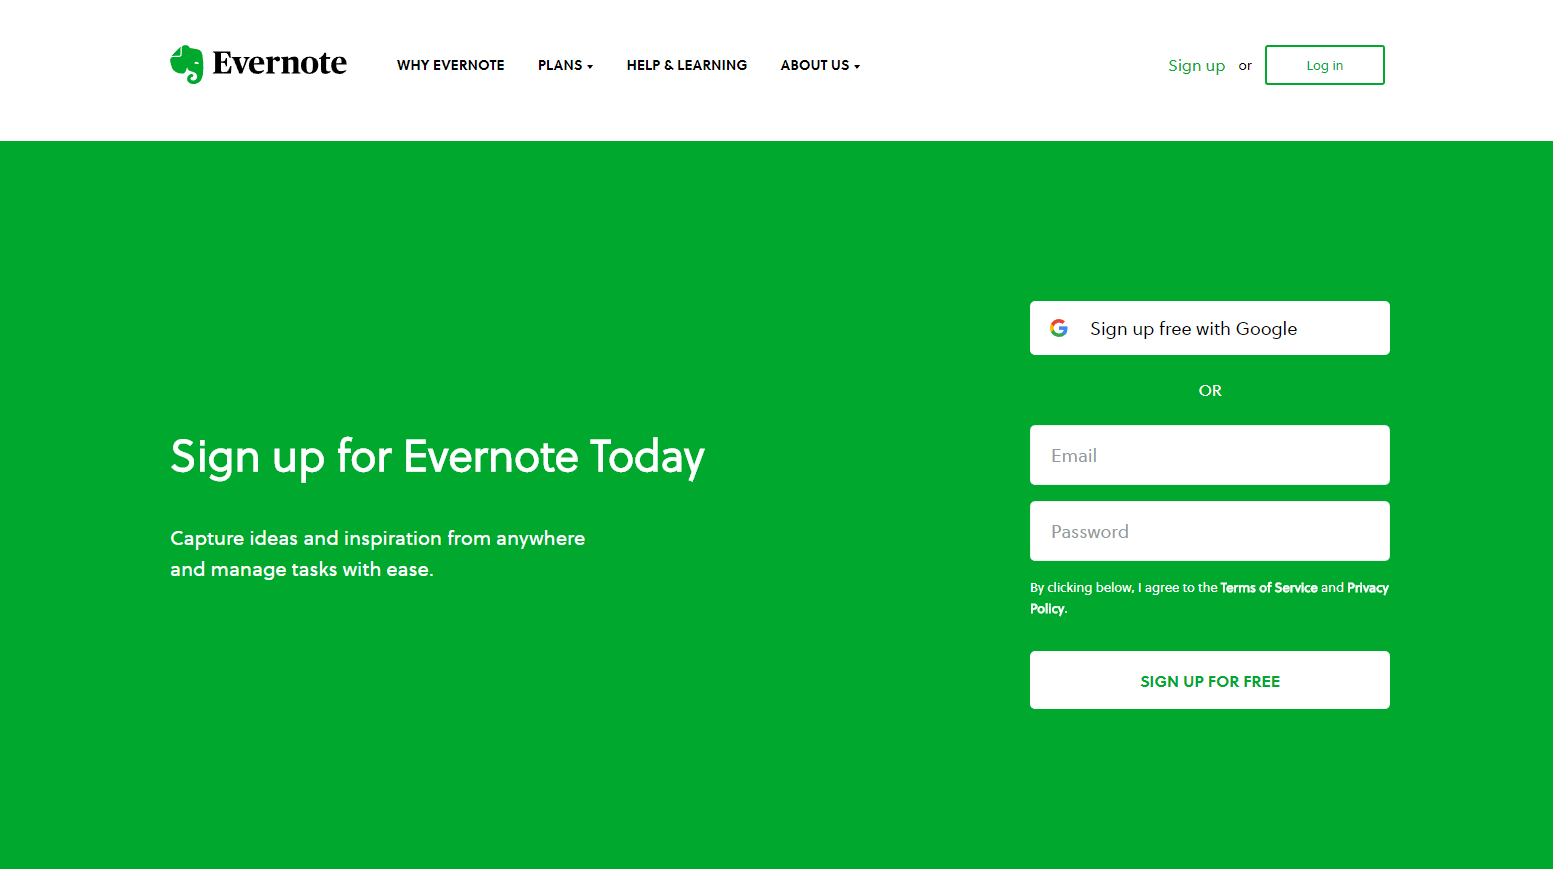 evernote-home-page-signup